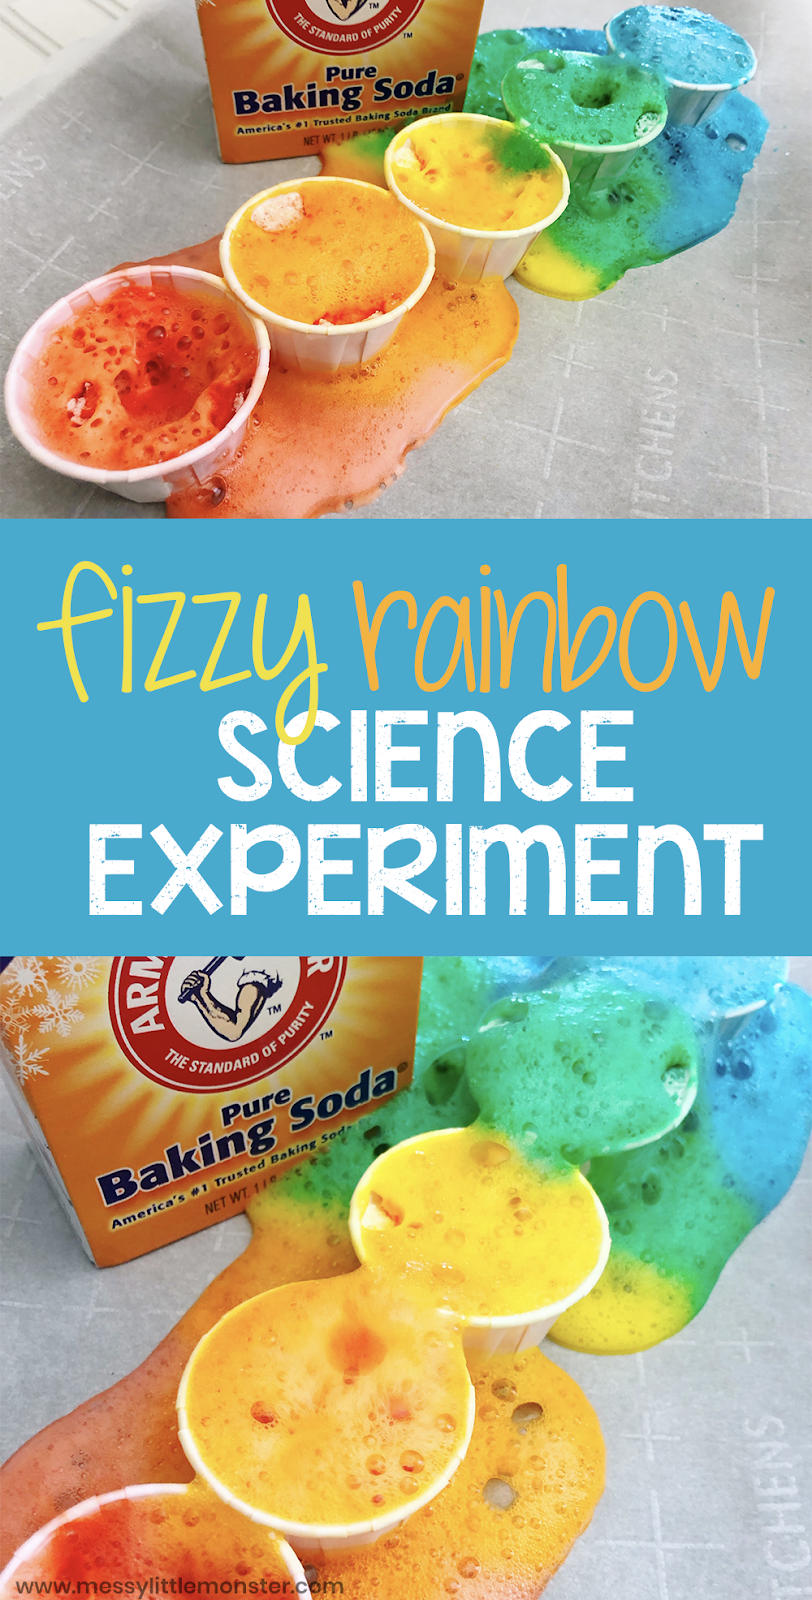 Baking soda and vinegar rainbow science experiment for kids. Toddlers and preschoolers will love this baking soda science experiment and it makes a fun rainbow activity for kids.